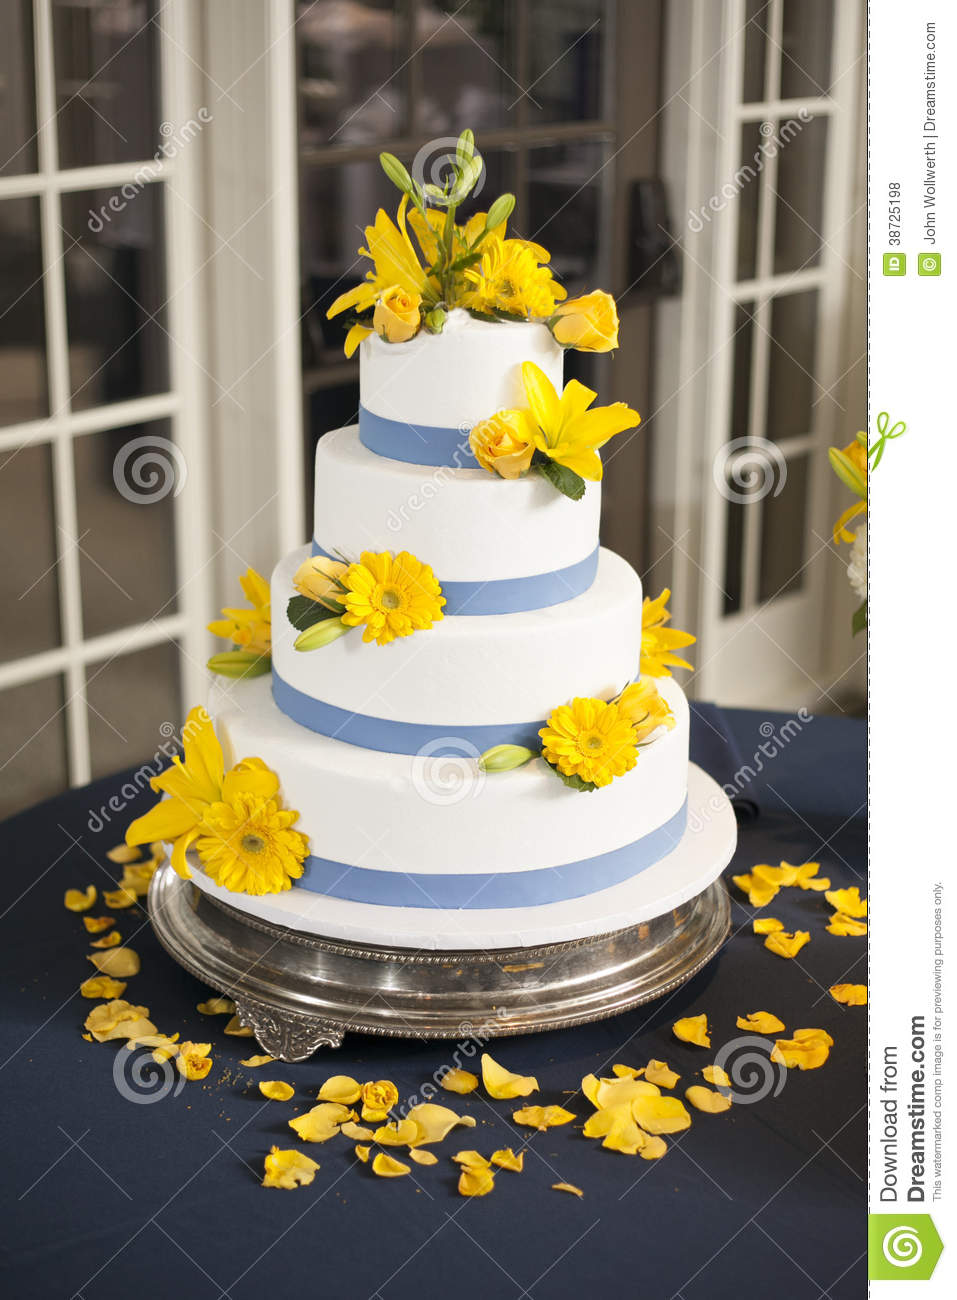 Wedding Cake With Yellow Flowers Stock Photo Image Of Sugar Food 38725198